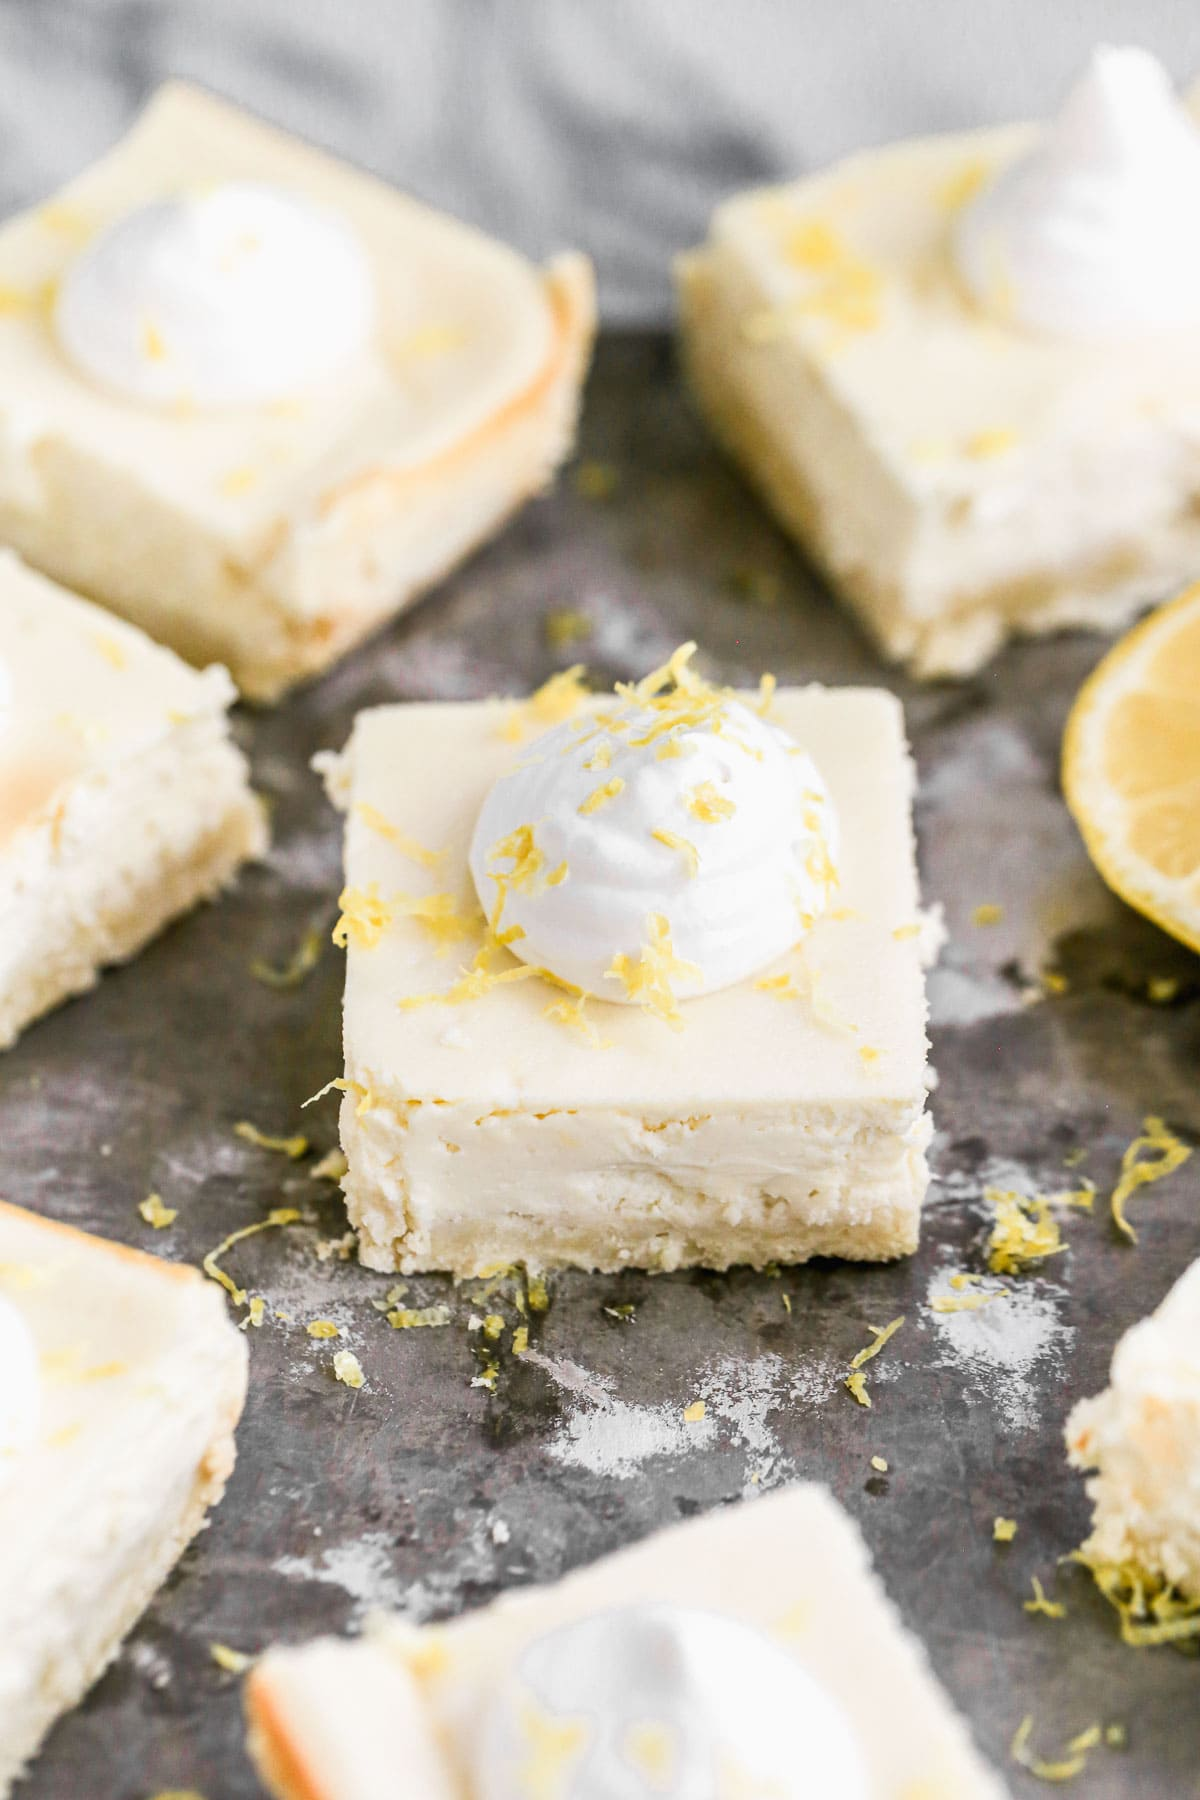 Simple and delicious Strawberry Lemon Cream Cheese Bars recipe — Bright, creamy, and the perfect dessert for summer picnics and potlucks! @wellplated